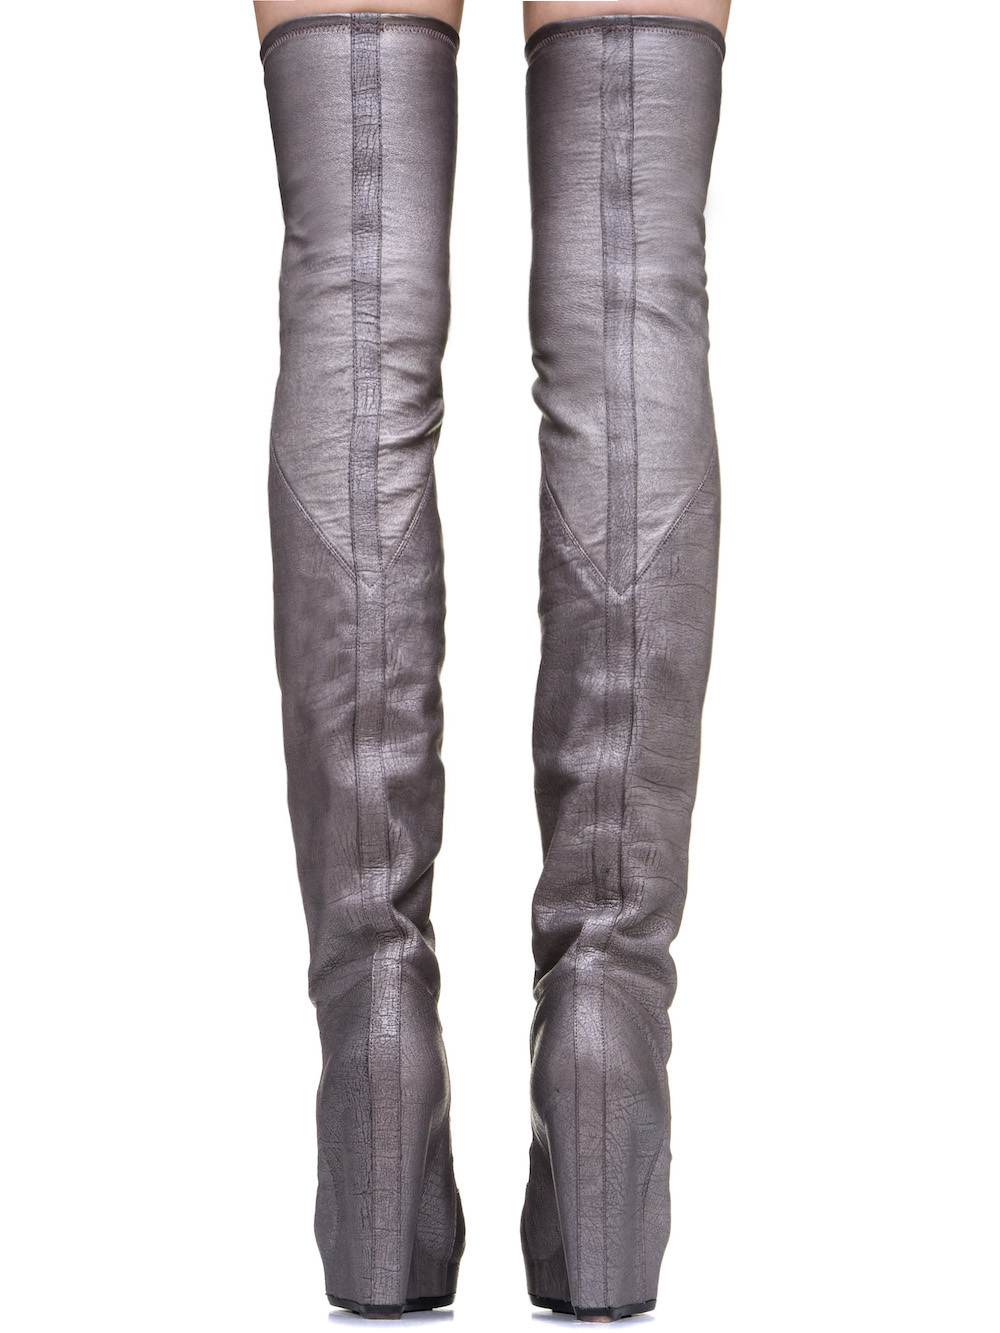 RICK OWENS RUHLMANN KNEE HIGH BOOTS IN SILVER